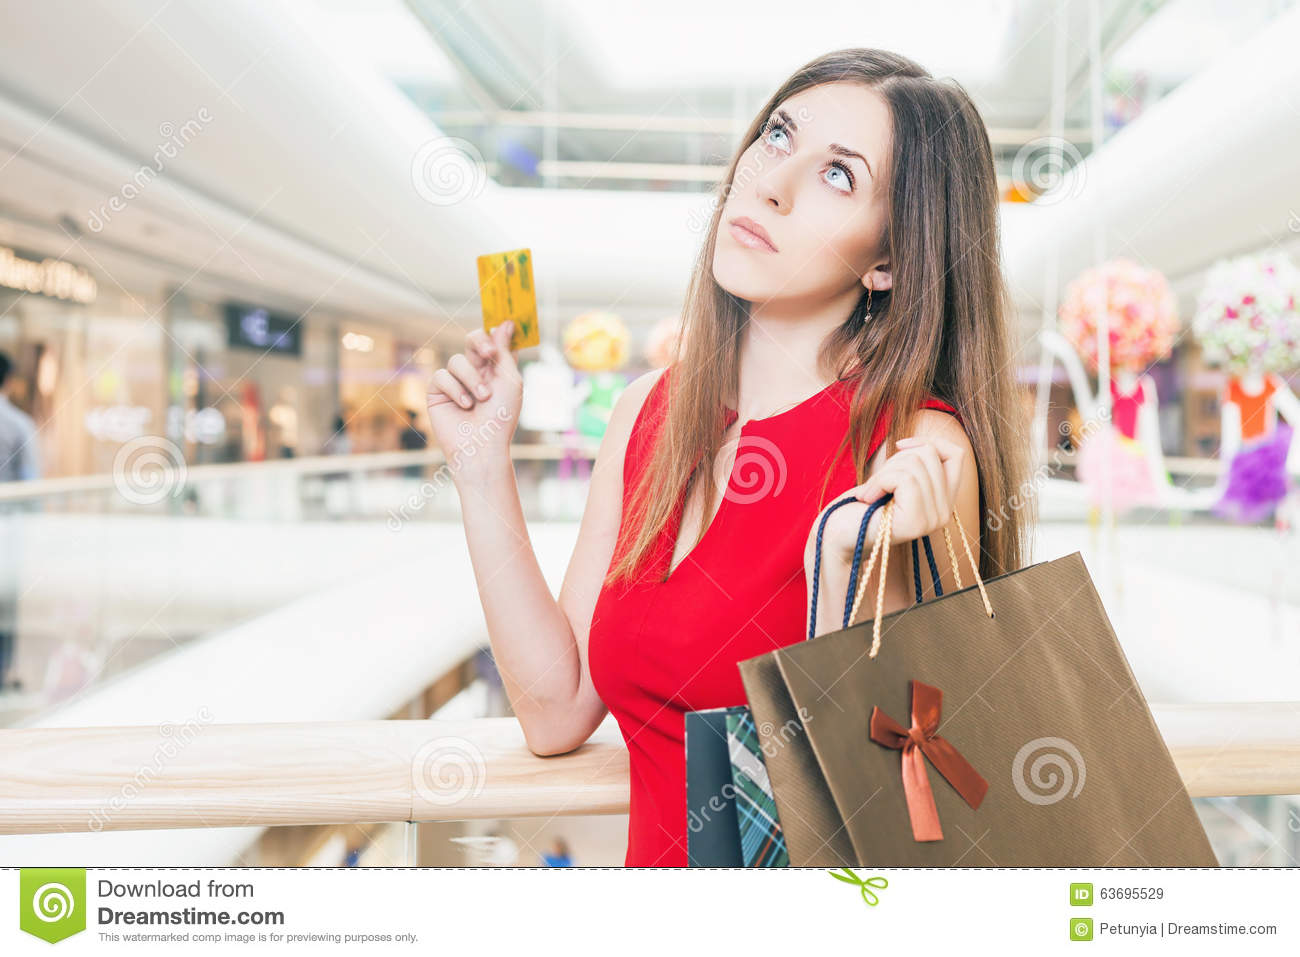 Clothing stores credit cards